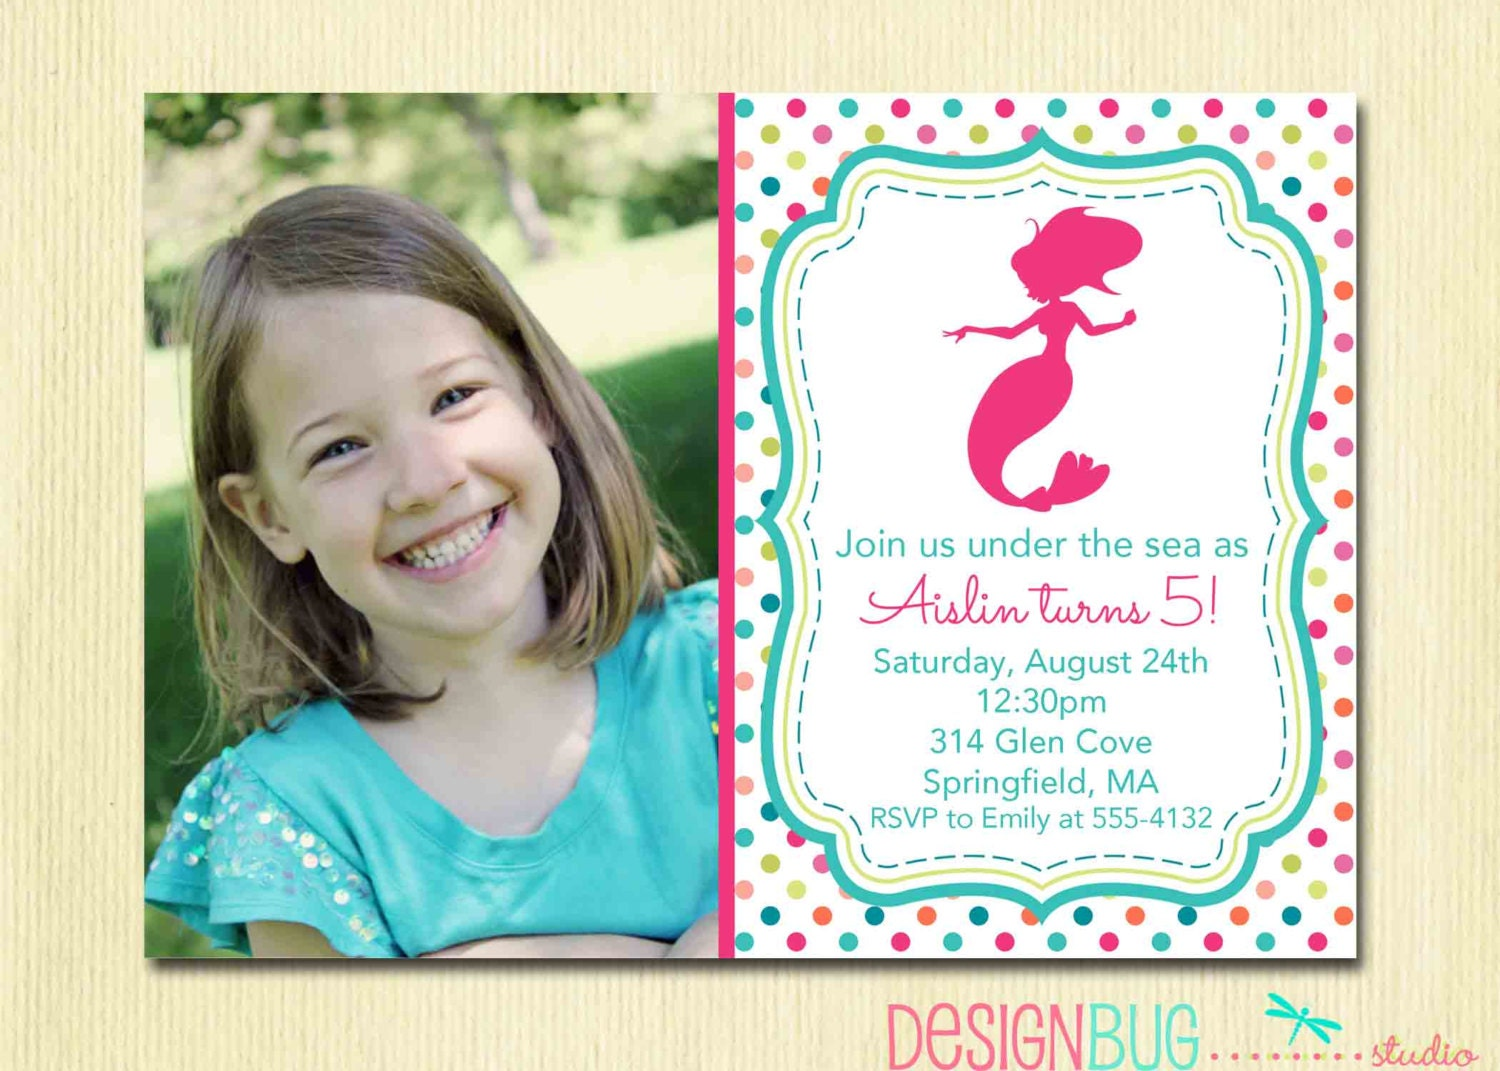 Mermaid Birthday Invitation Year Old ANY Age - Birthday invitation wording for 1 year old baby girl